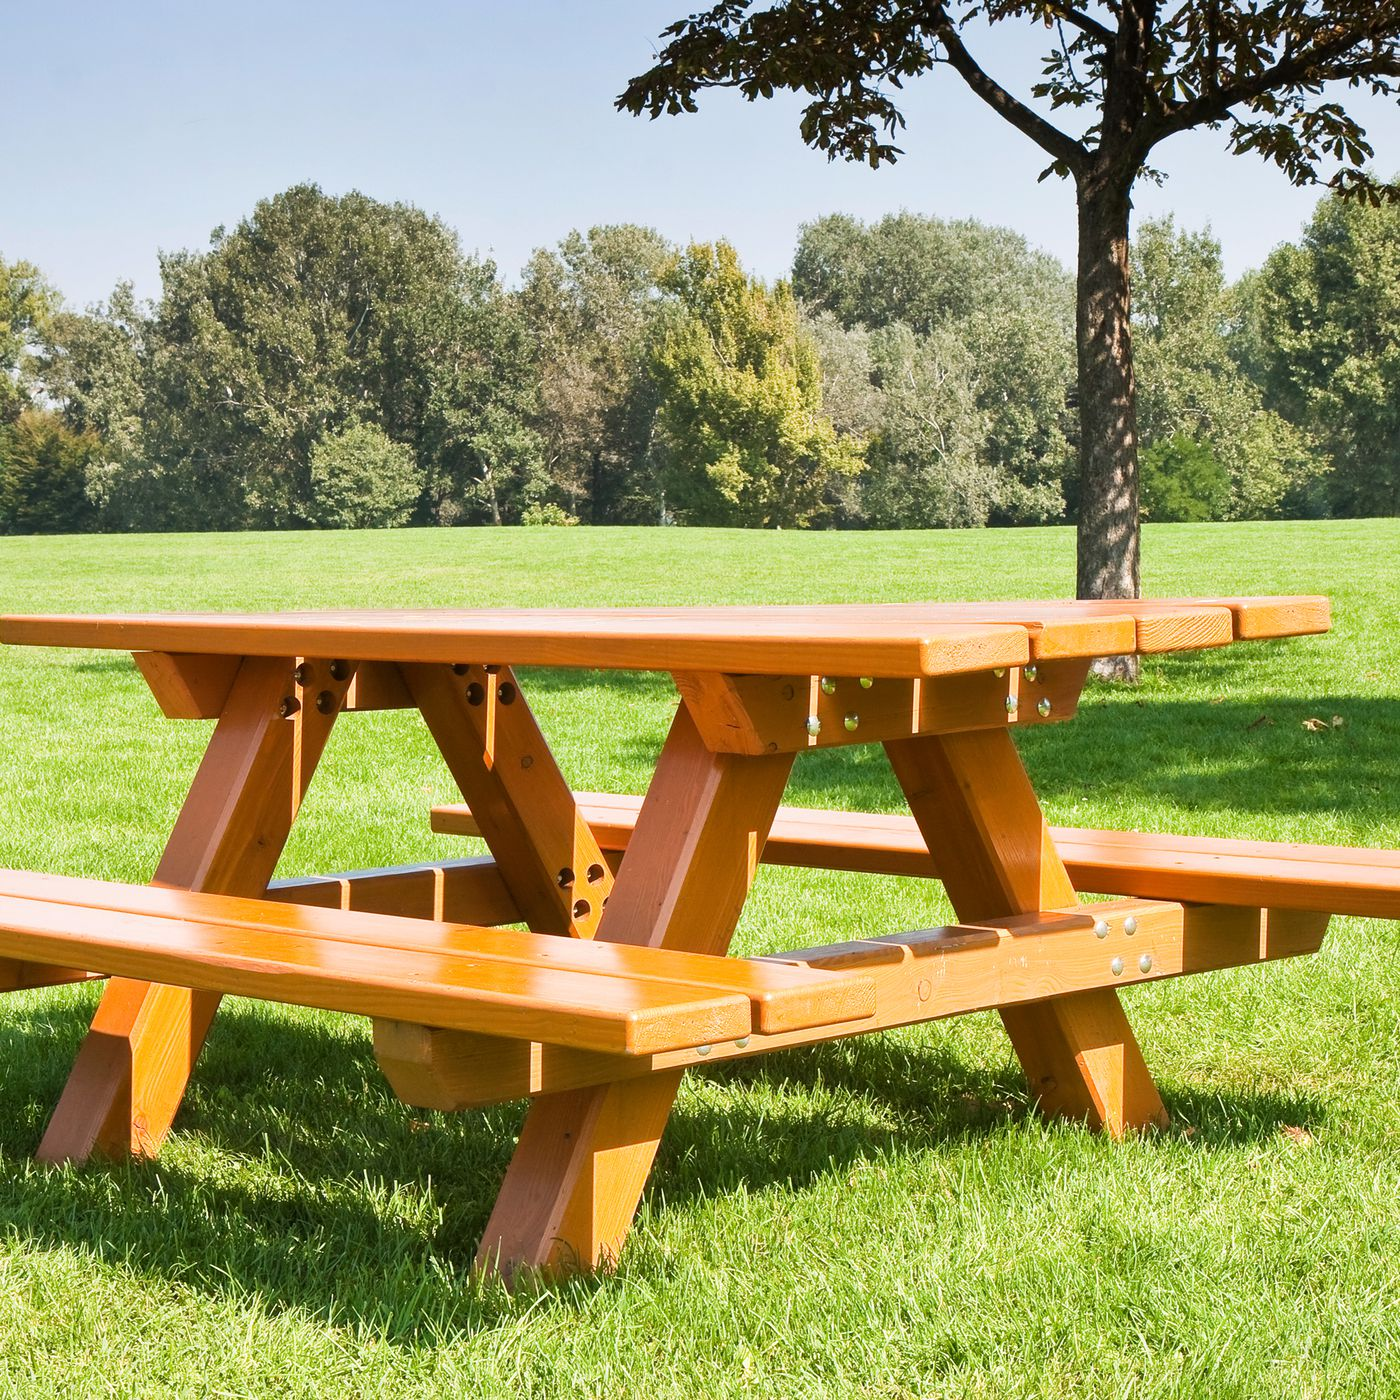 How To Build A Clic Picnic Table With Benches This Old House